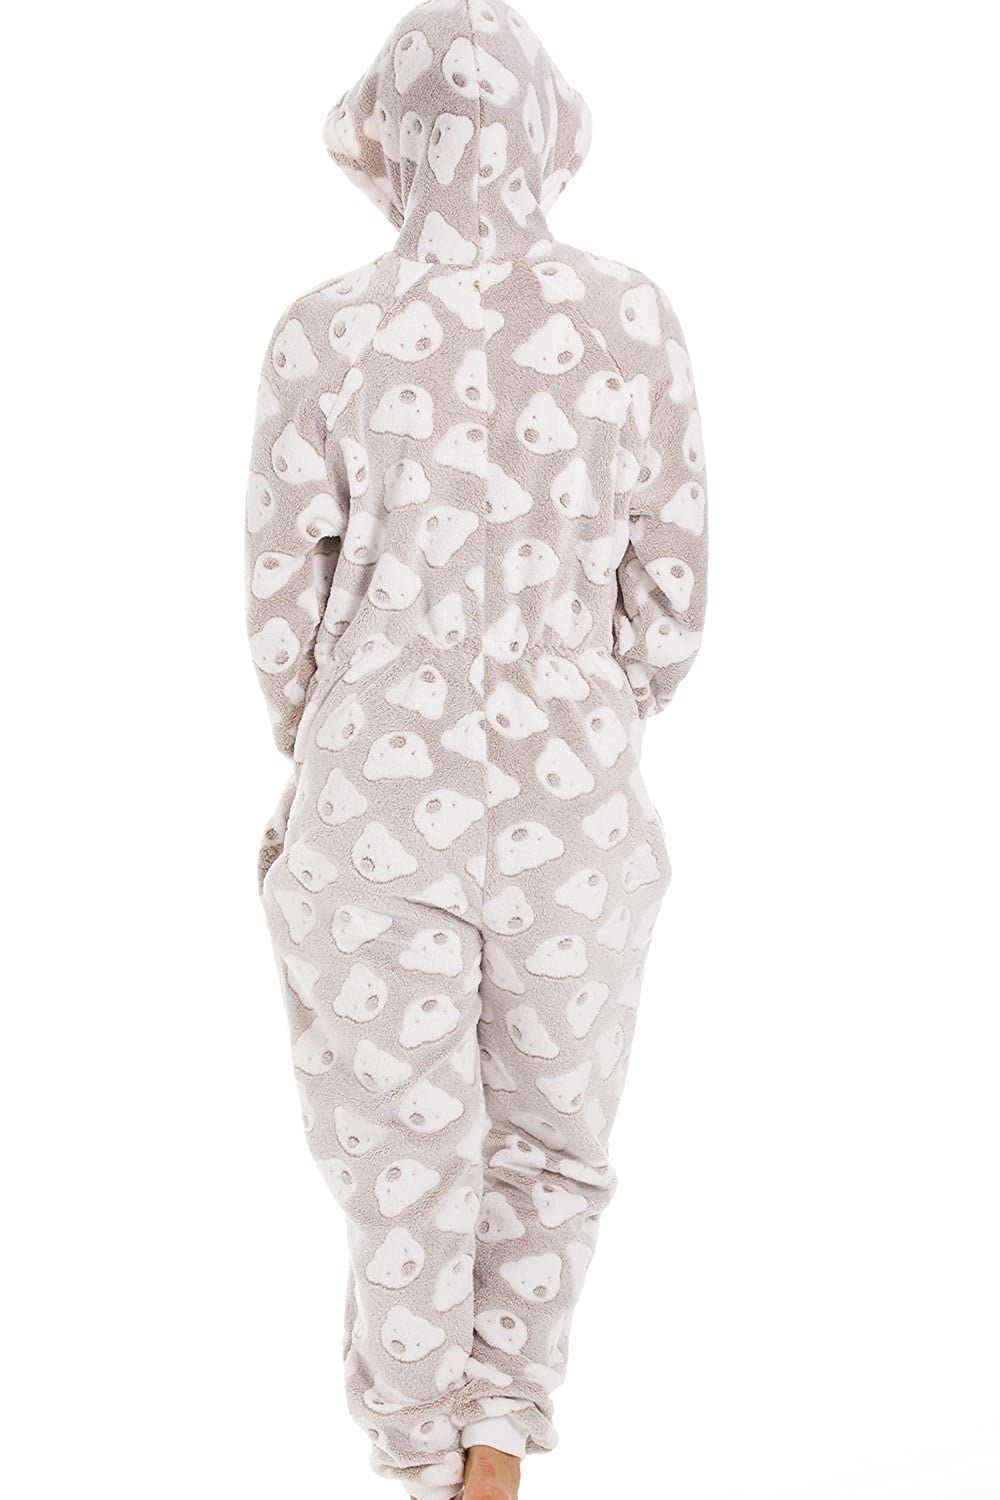 Camille Womens Beige Supersoft Fleece Knitted in Bear Design Hooded Onesie